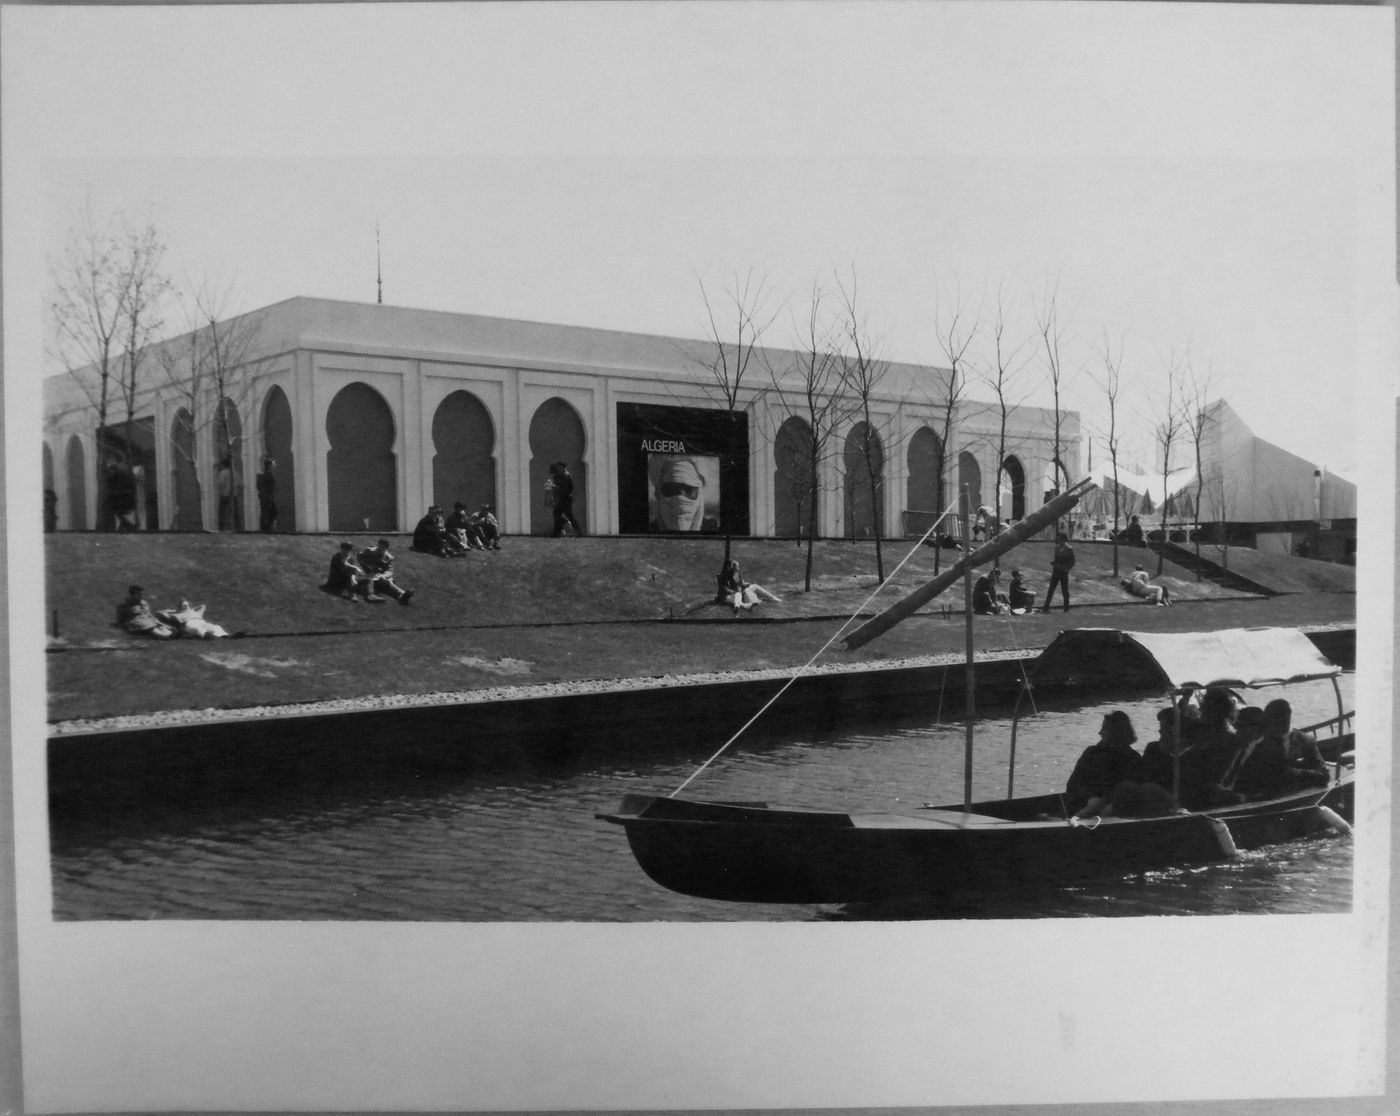 Back view of the Algerian Pavilion with a gondola in foreground, Expo 67, Montréal, Québec